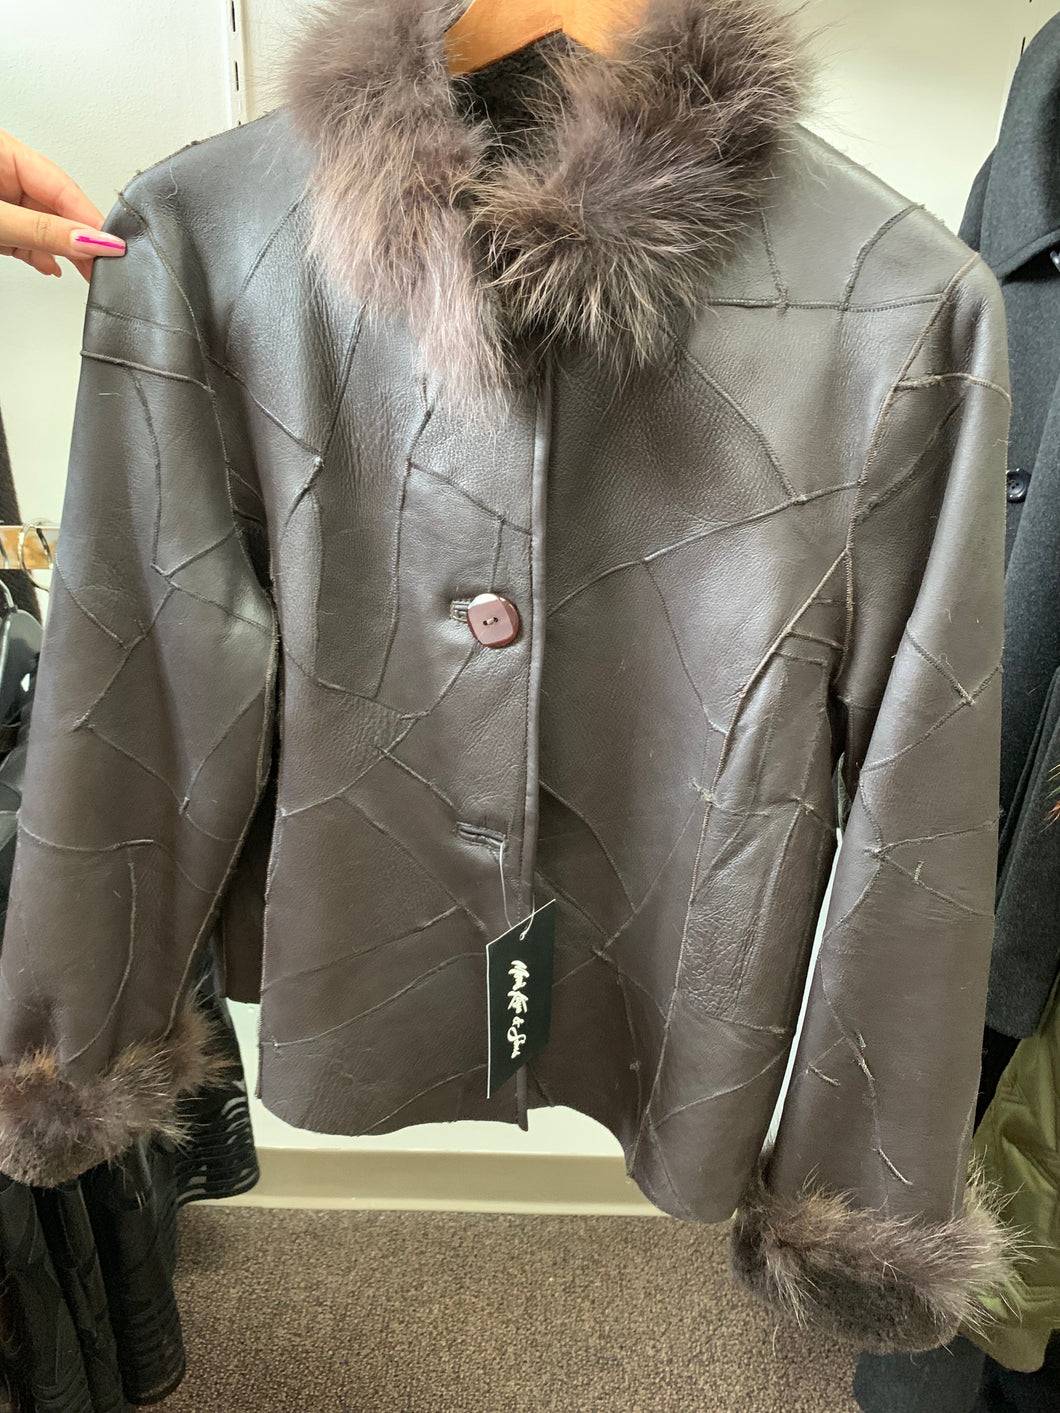 Mosaic Brown Leather Jacket with Fur Collar